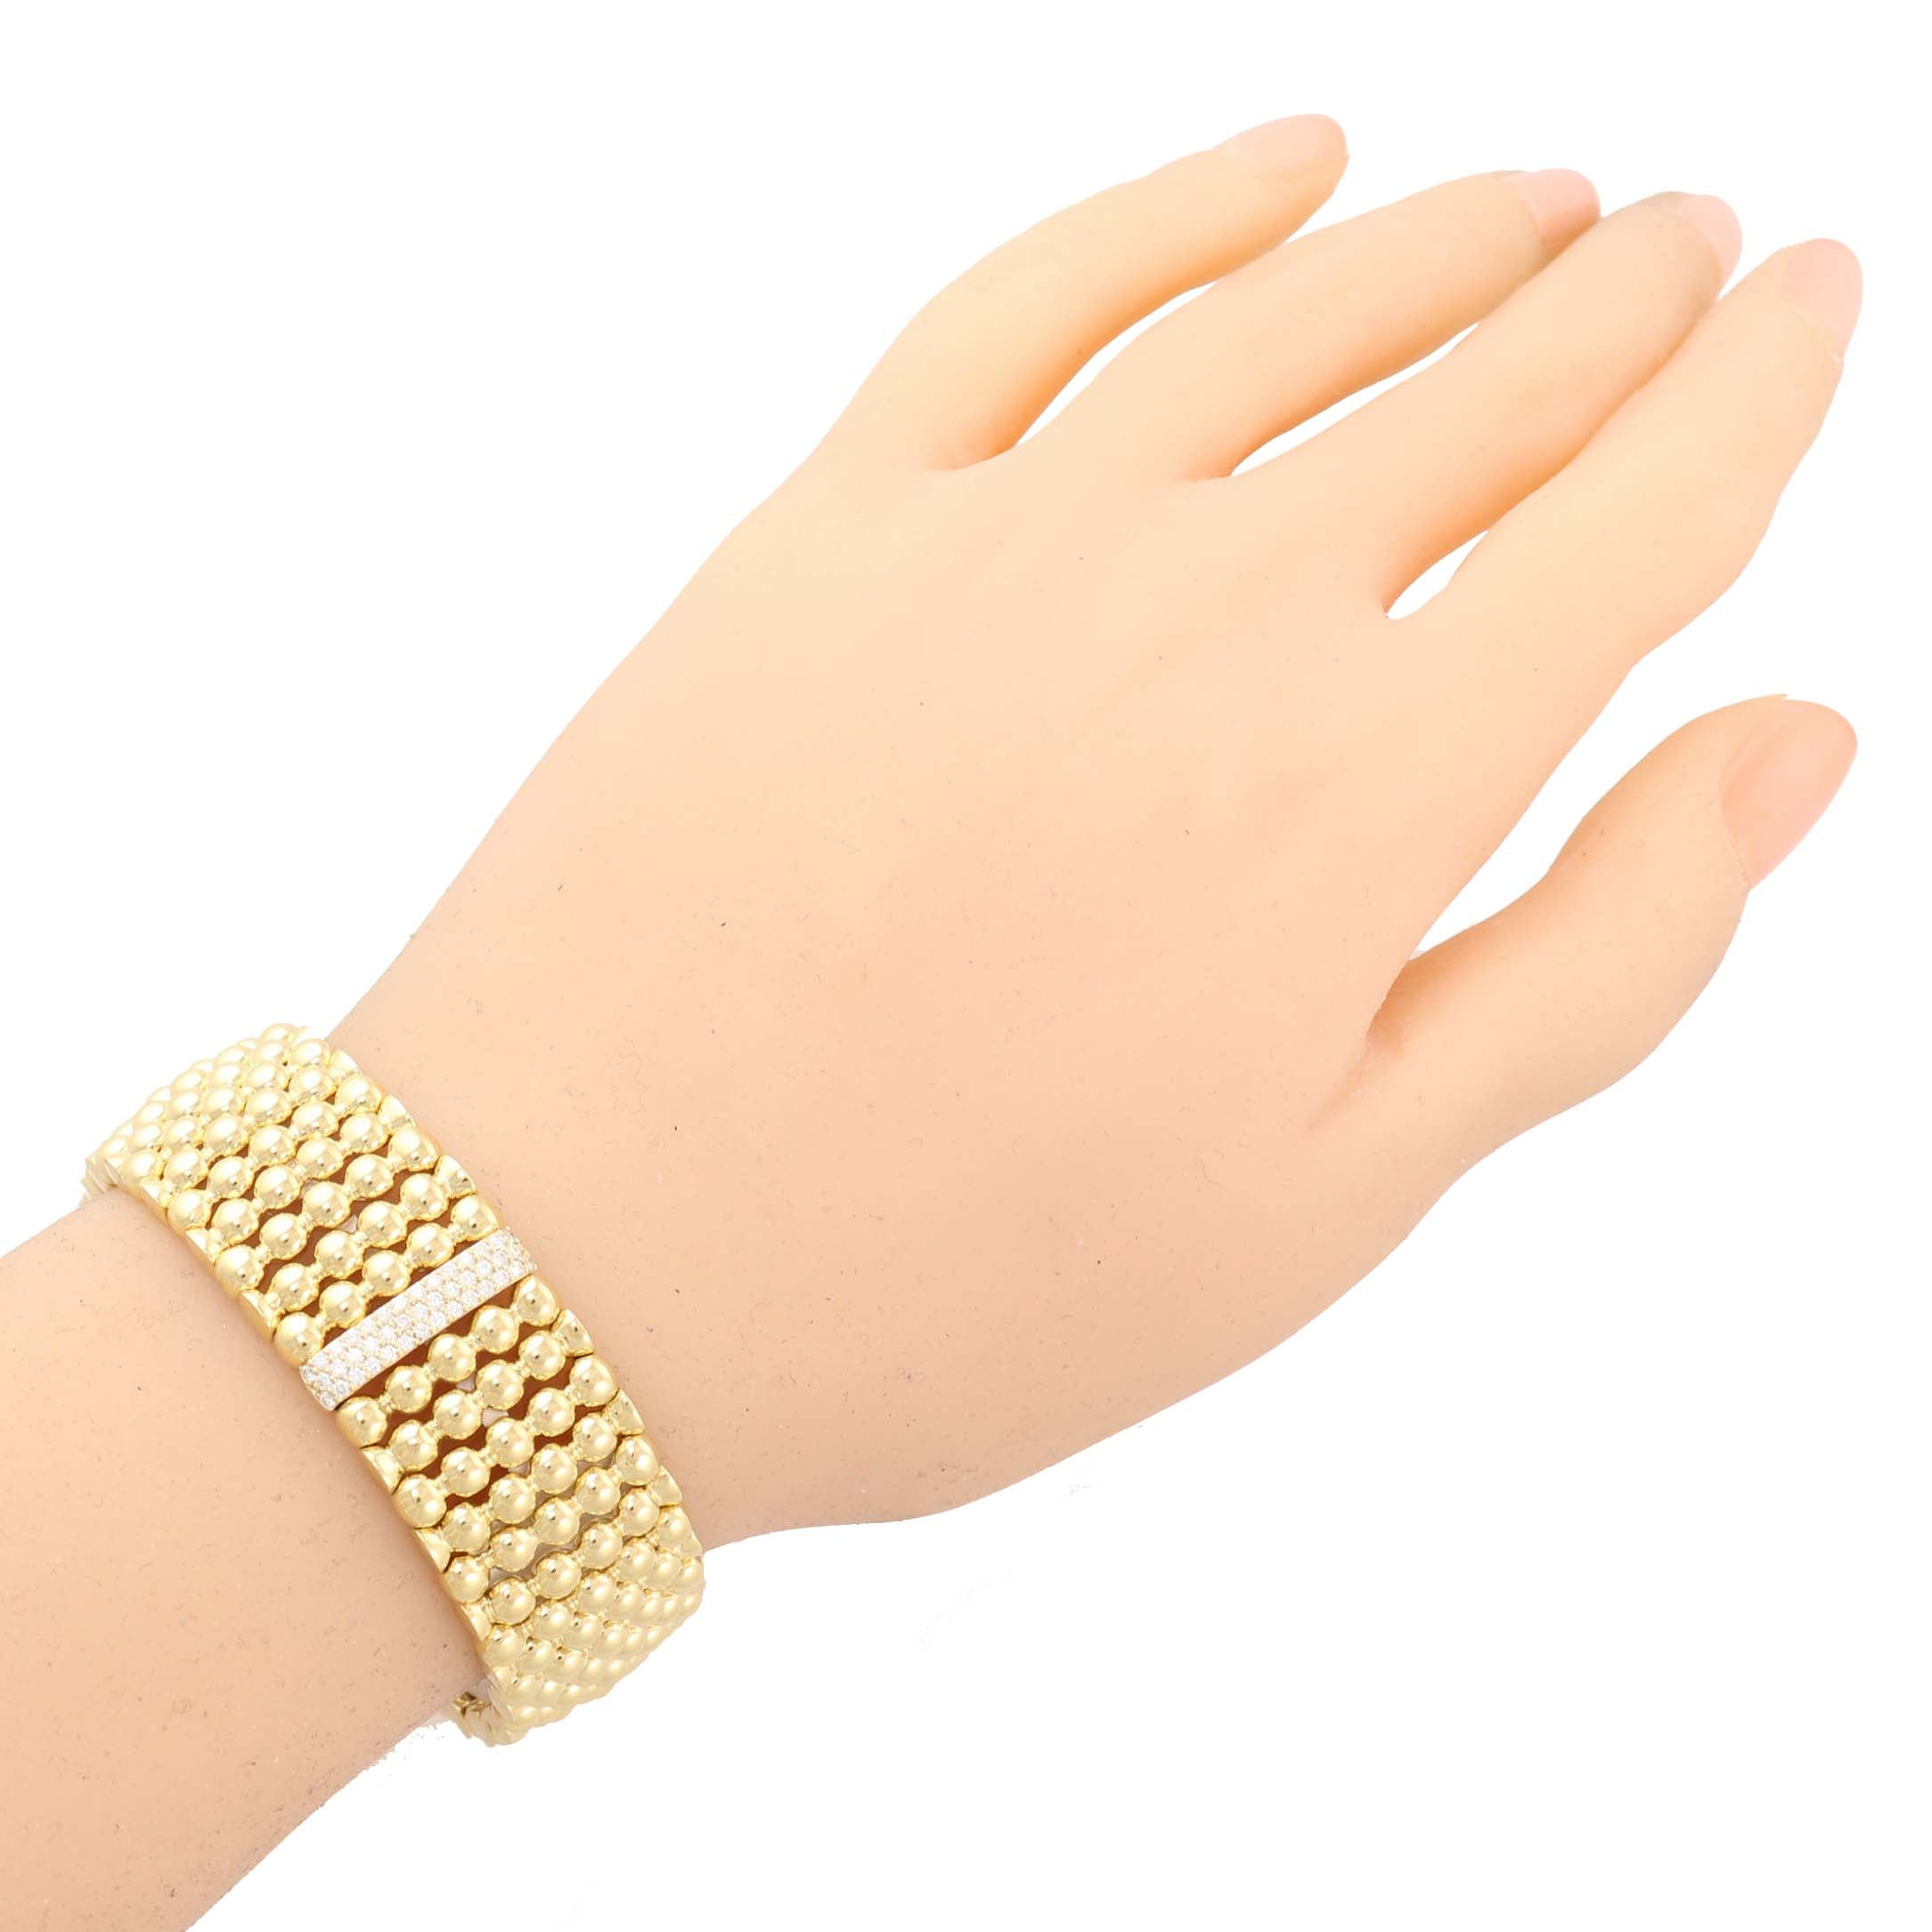 Authentic Lagos Caviar 18k Yellow Gold Diamond Pave 20mm Wide Bracelet $9800 A9